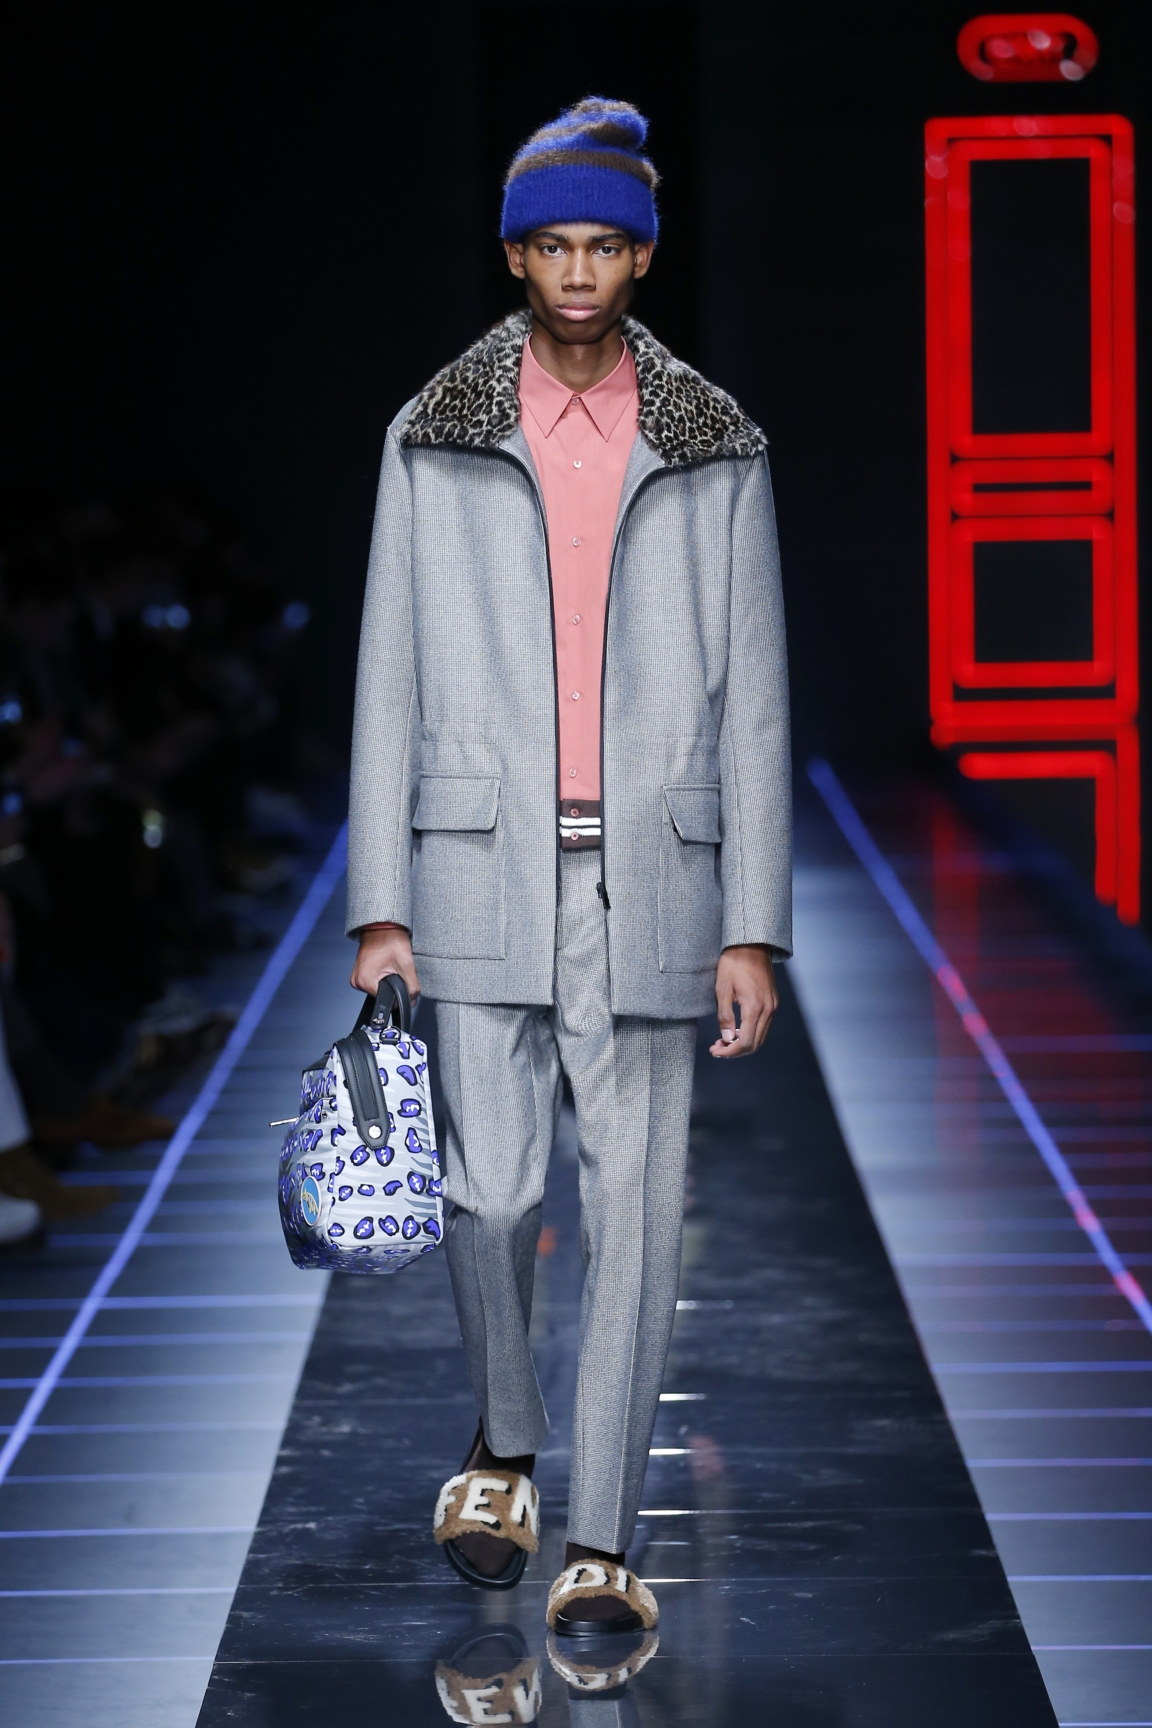 fendi-men-fw16-17-look-11